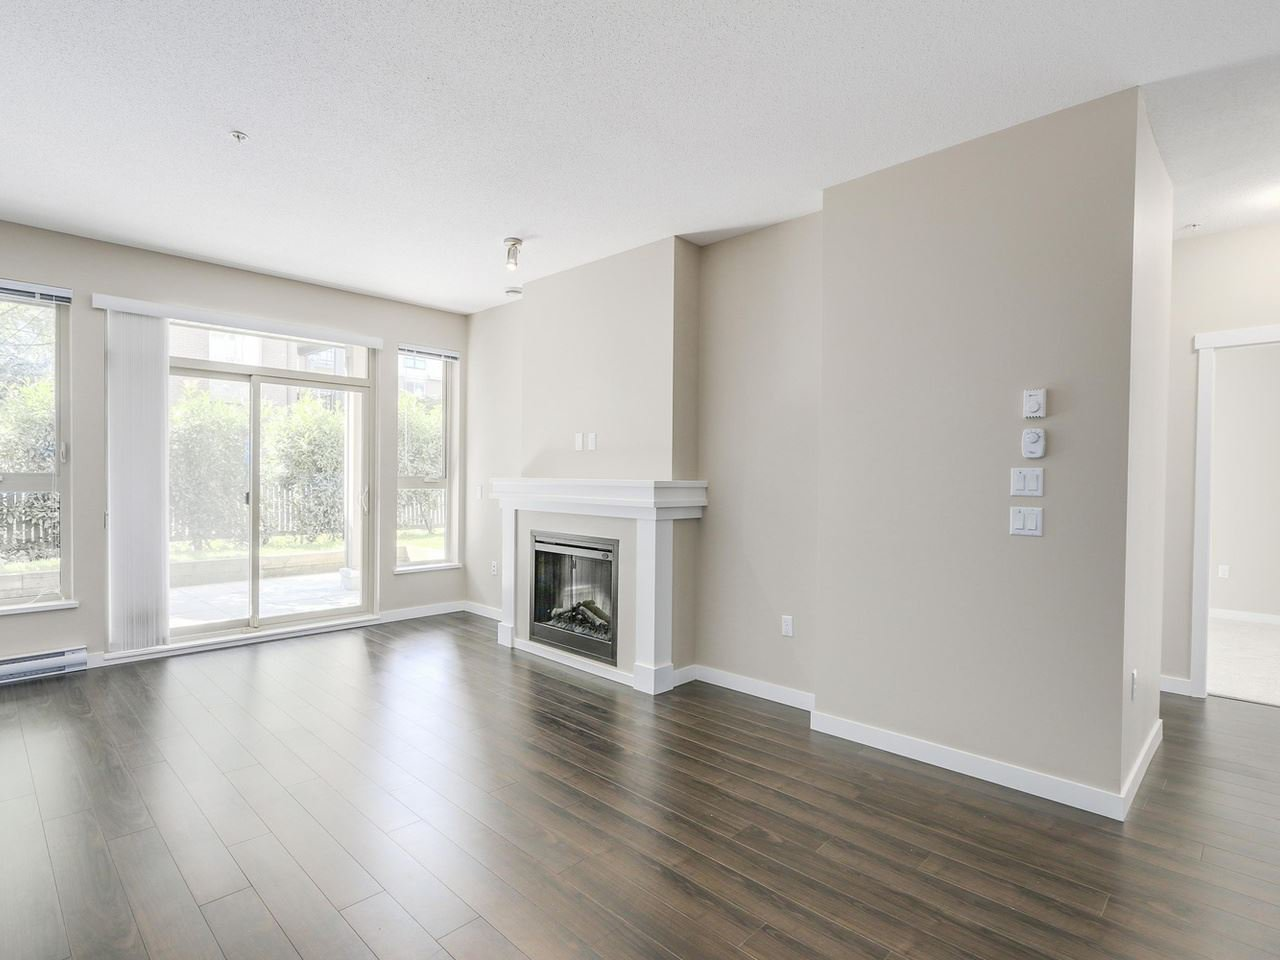 """Photo 2: Photos: 108 1150 KENSAL Place in Coquitlam: New Horizons Condo for sale in """"Windsor Gate"""" : MLS®# R2102595"""